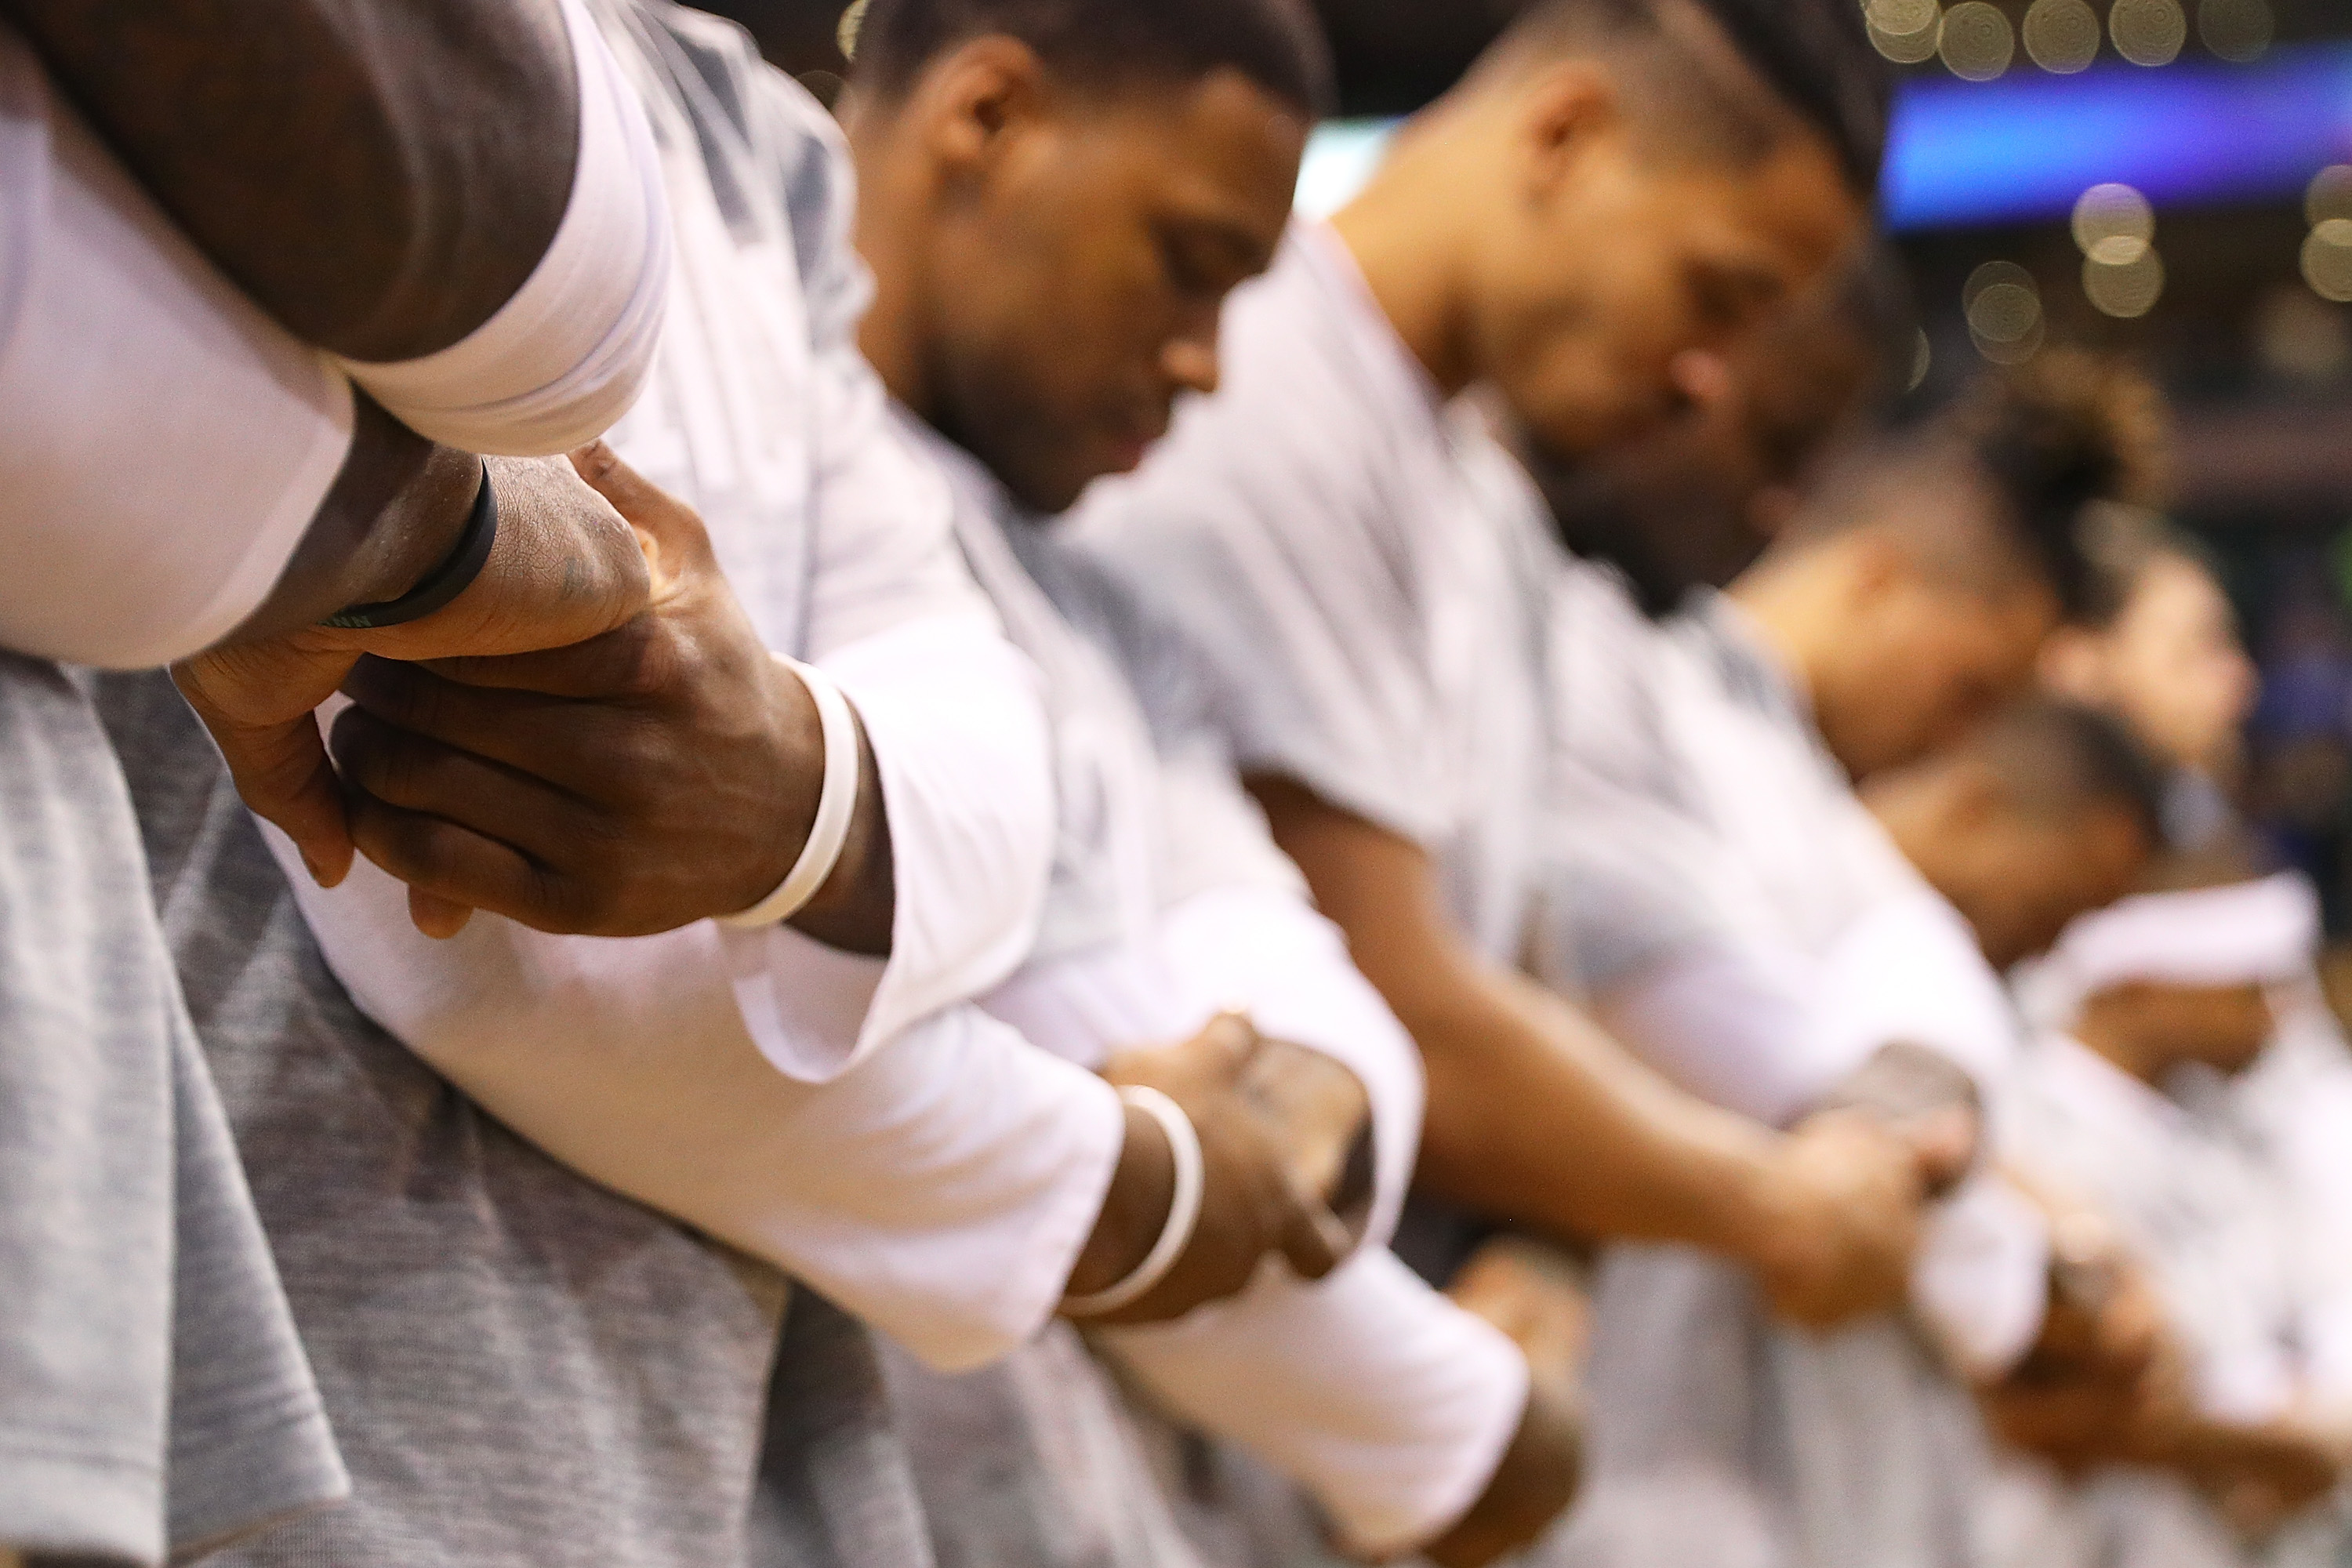 Members of the Boston Celtics link arms during the singing of the national anthem before their game against the New York Knicks at TD Garden on October 17, 2016 in Boston, Massachusetts.